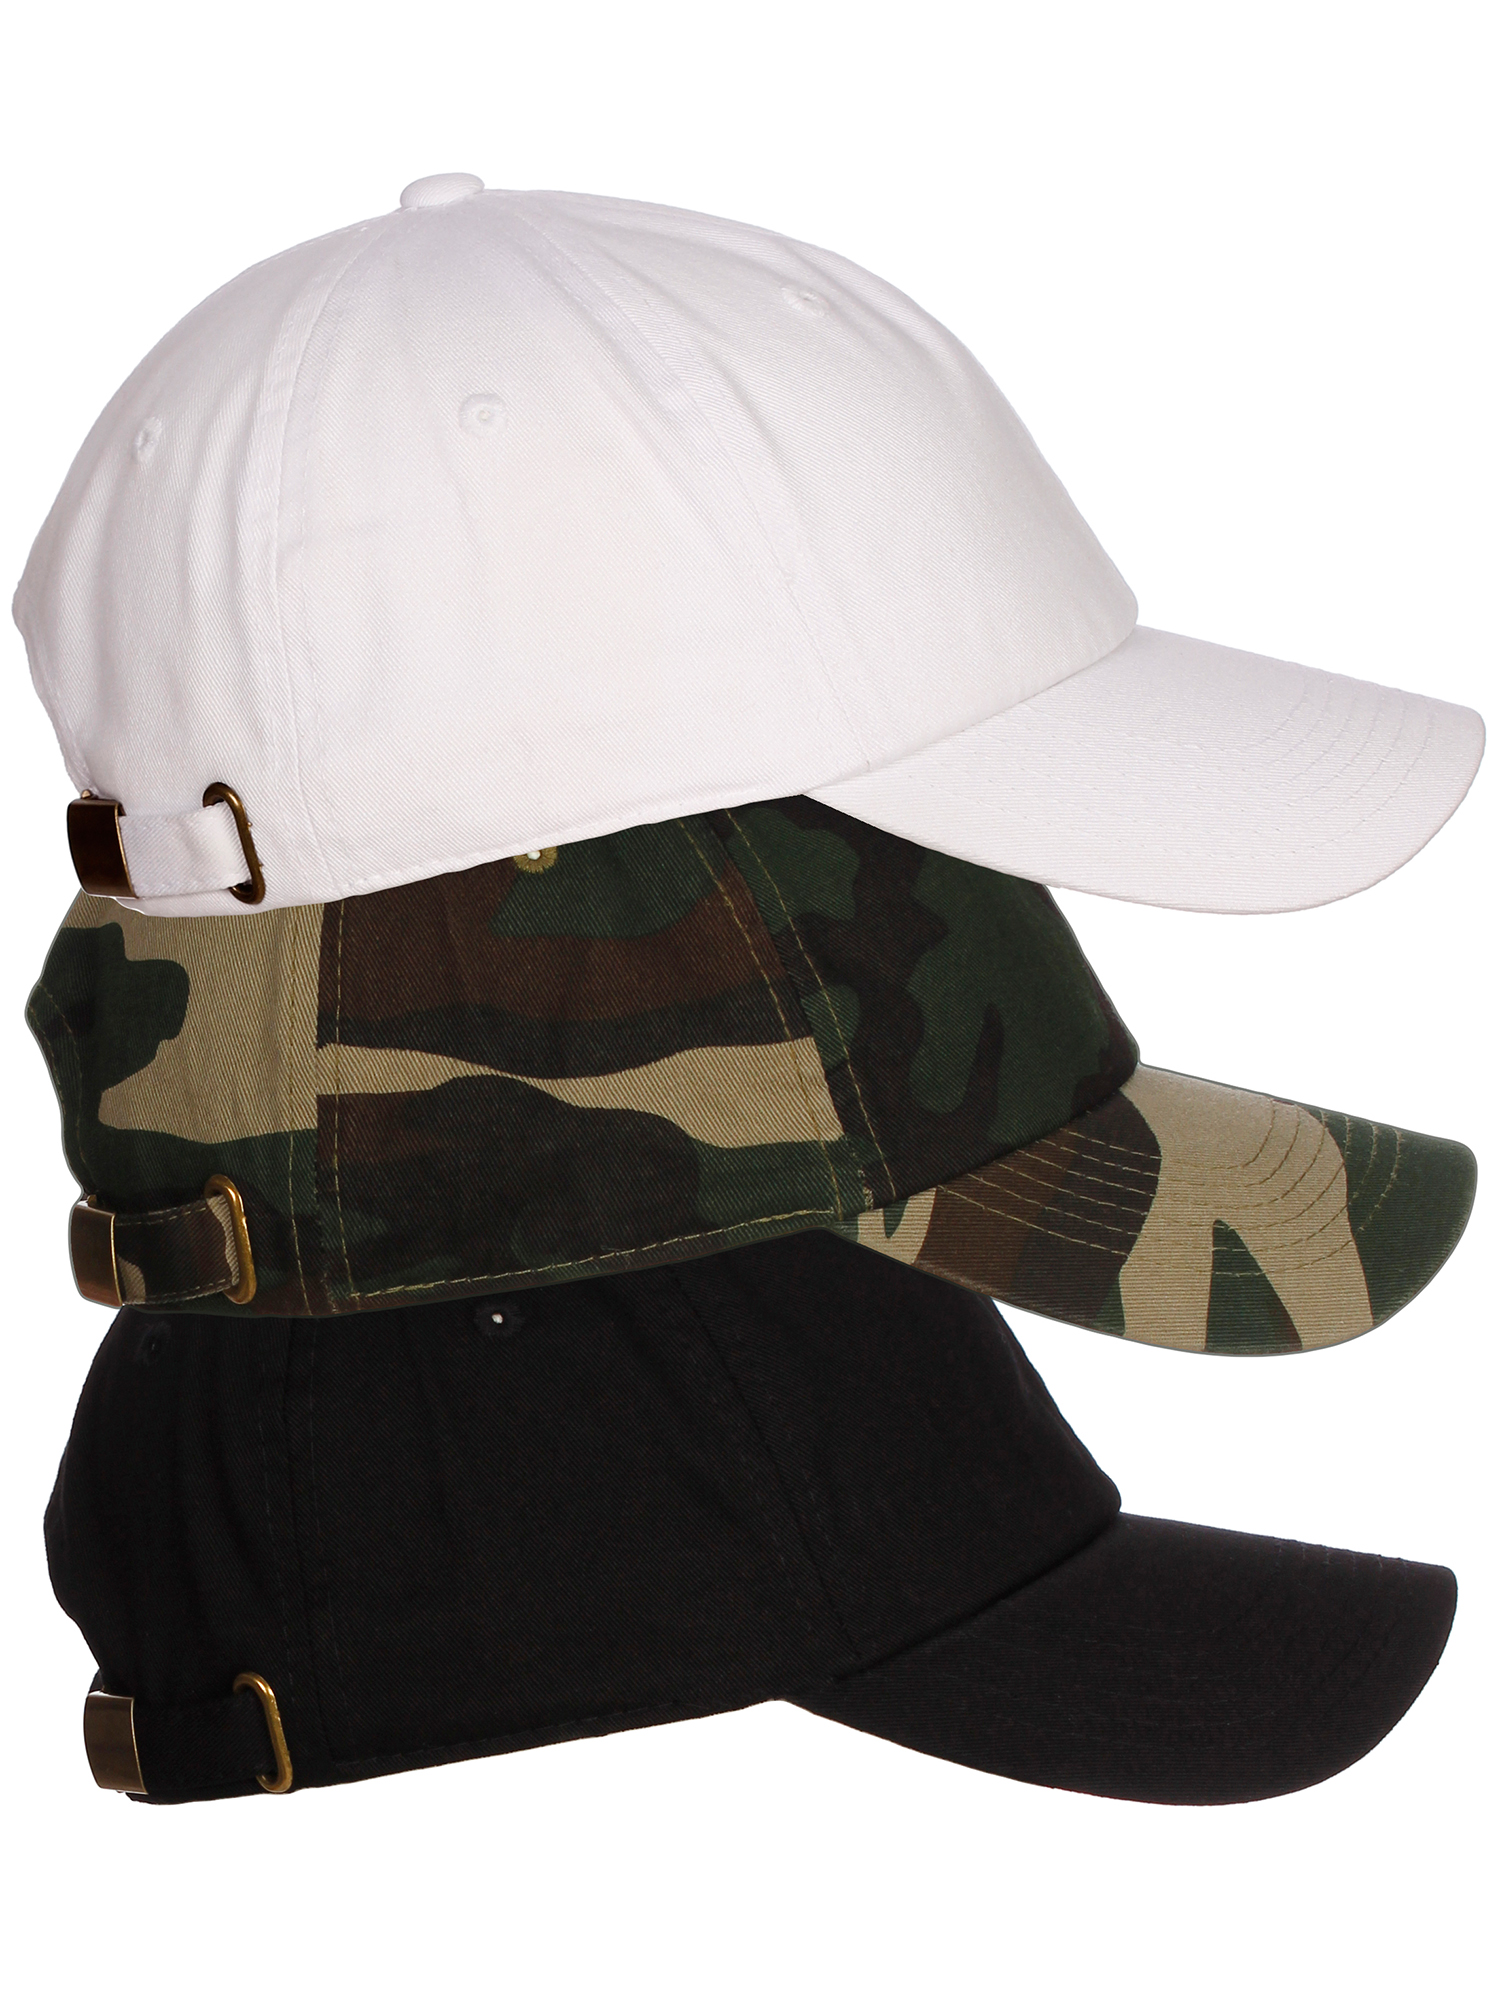 American Cities Plain Dad Hat 100 Cotton Unstructured Unisex Cap Adj Strap  3pk - White Black Camo. About this product. Picture 1 of 11  Picture 2 of  11 ... 5dd5e964d7e0